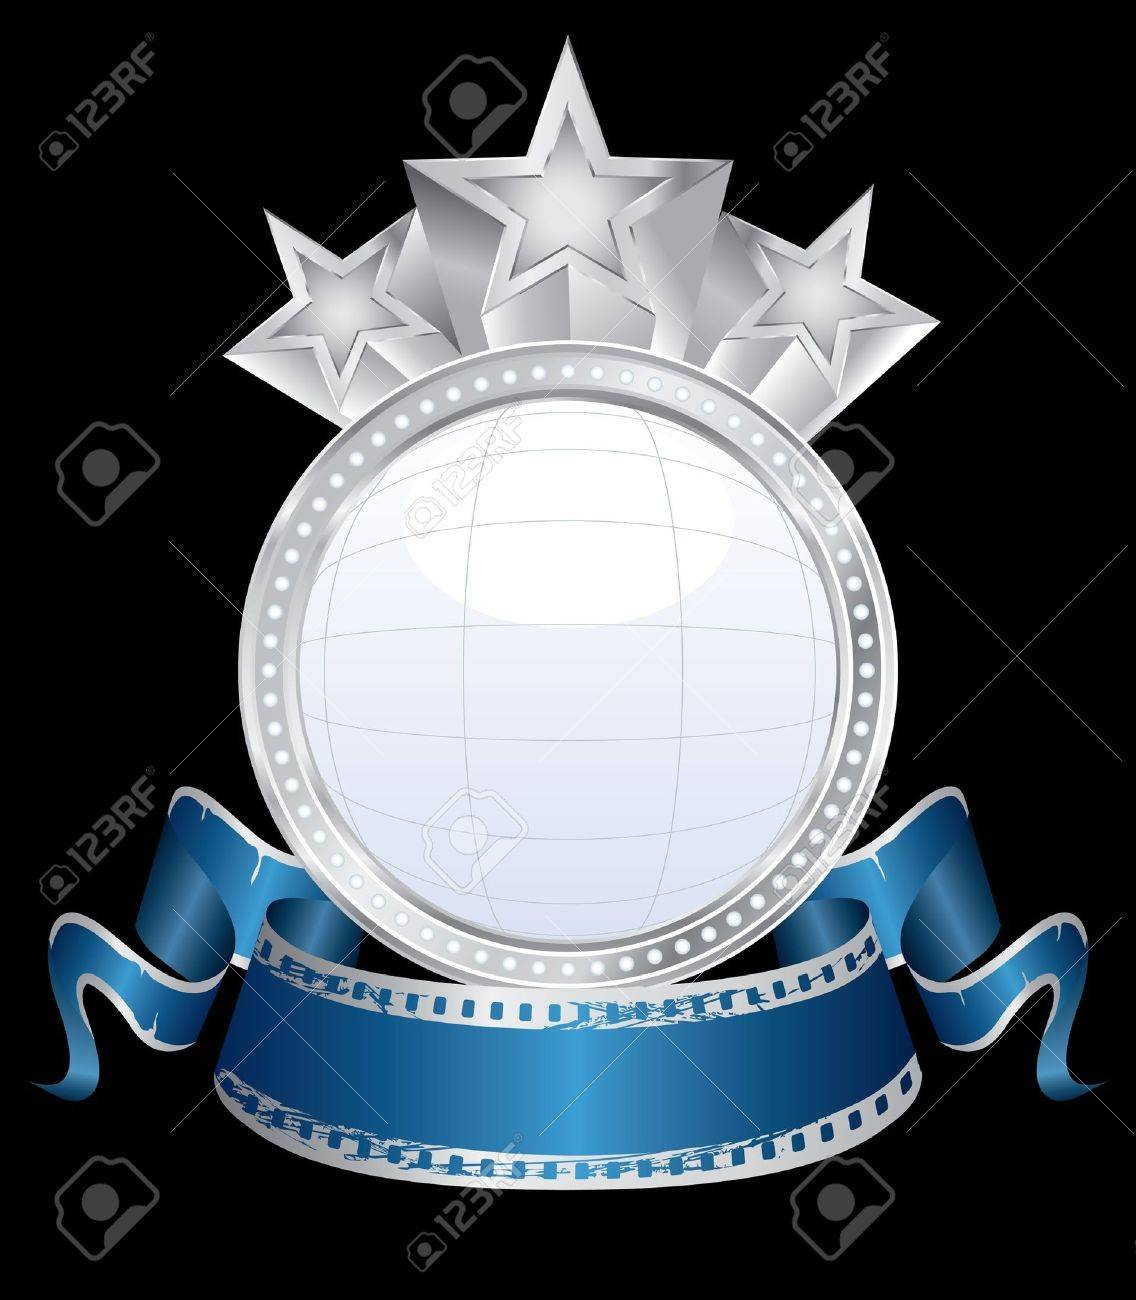 ector bubble blank silver cinema display with blue banner Stock Vector - 10001344